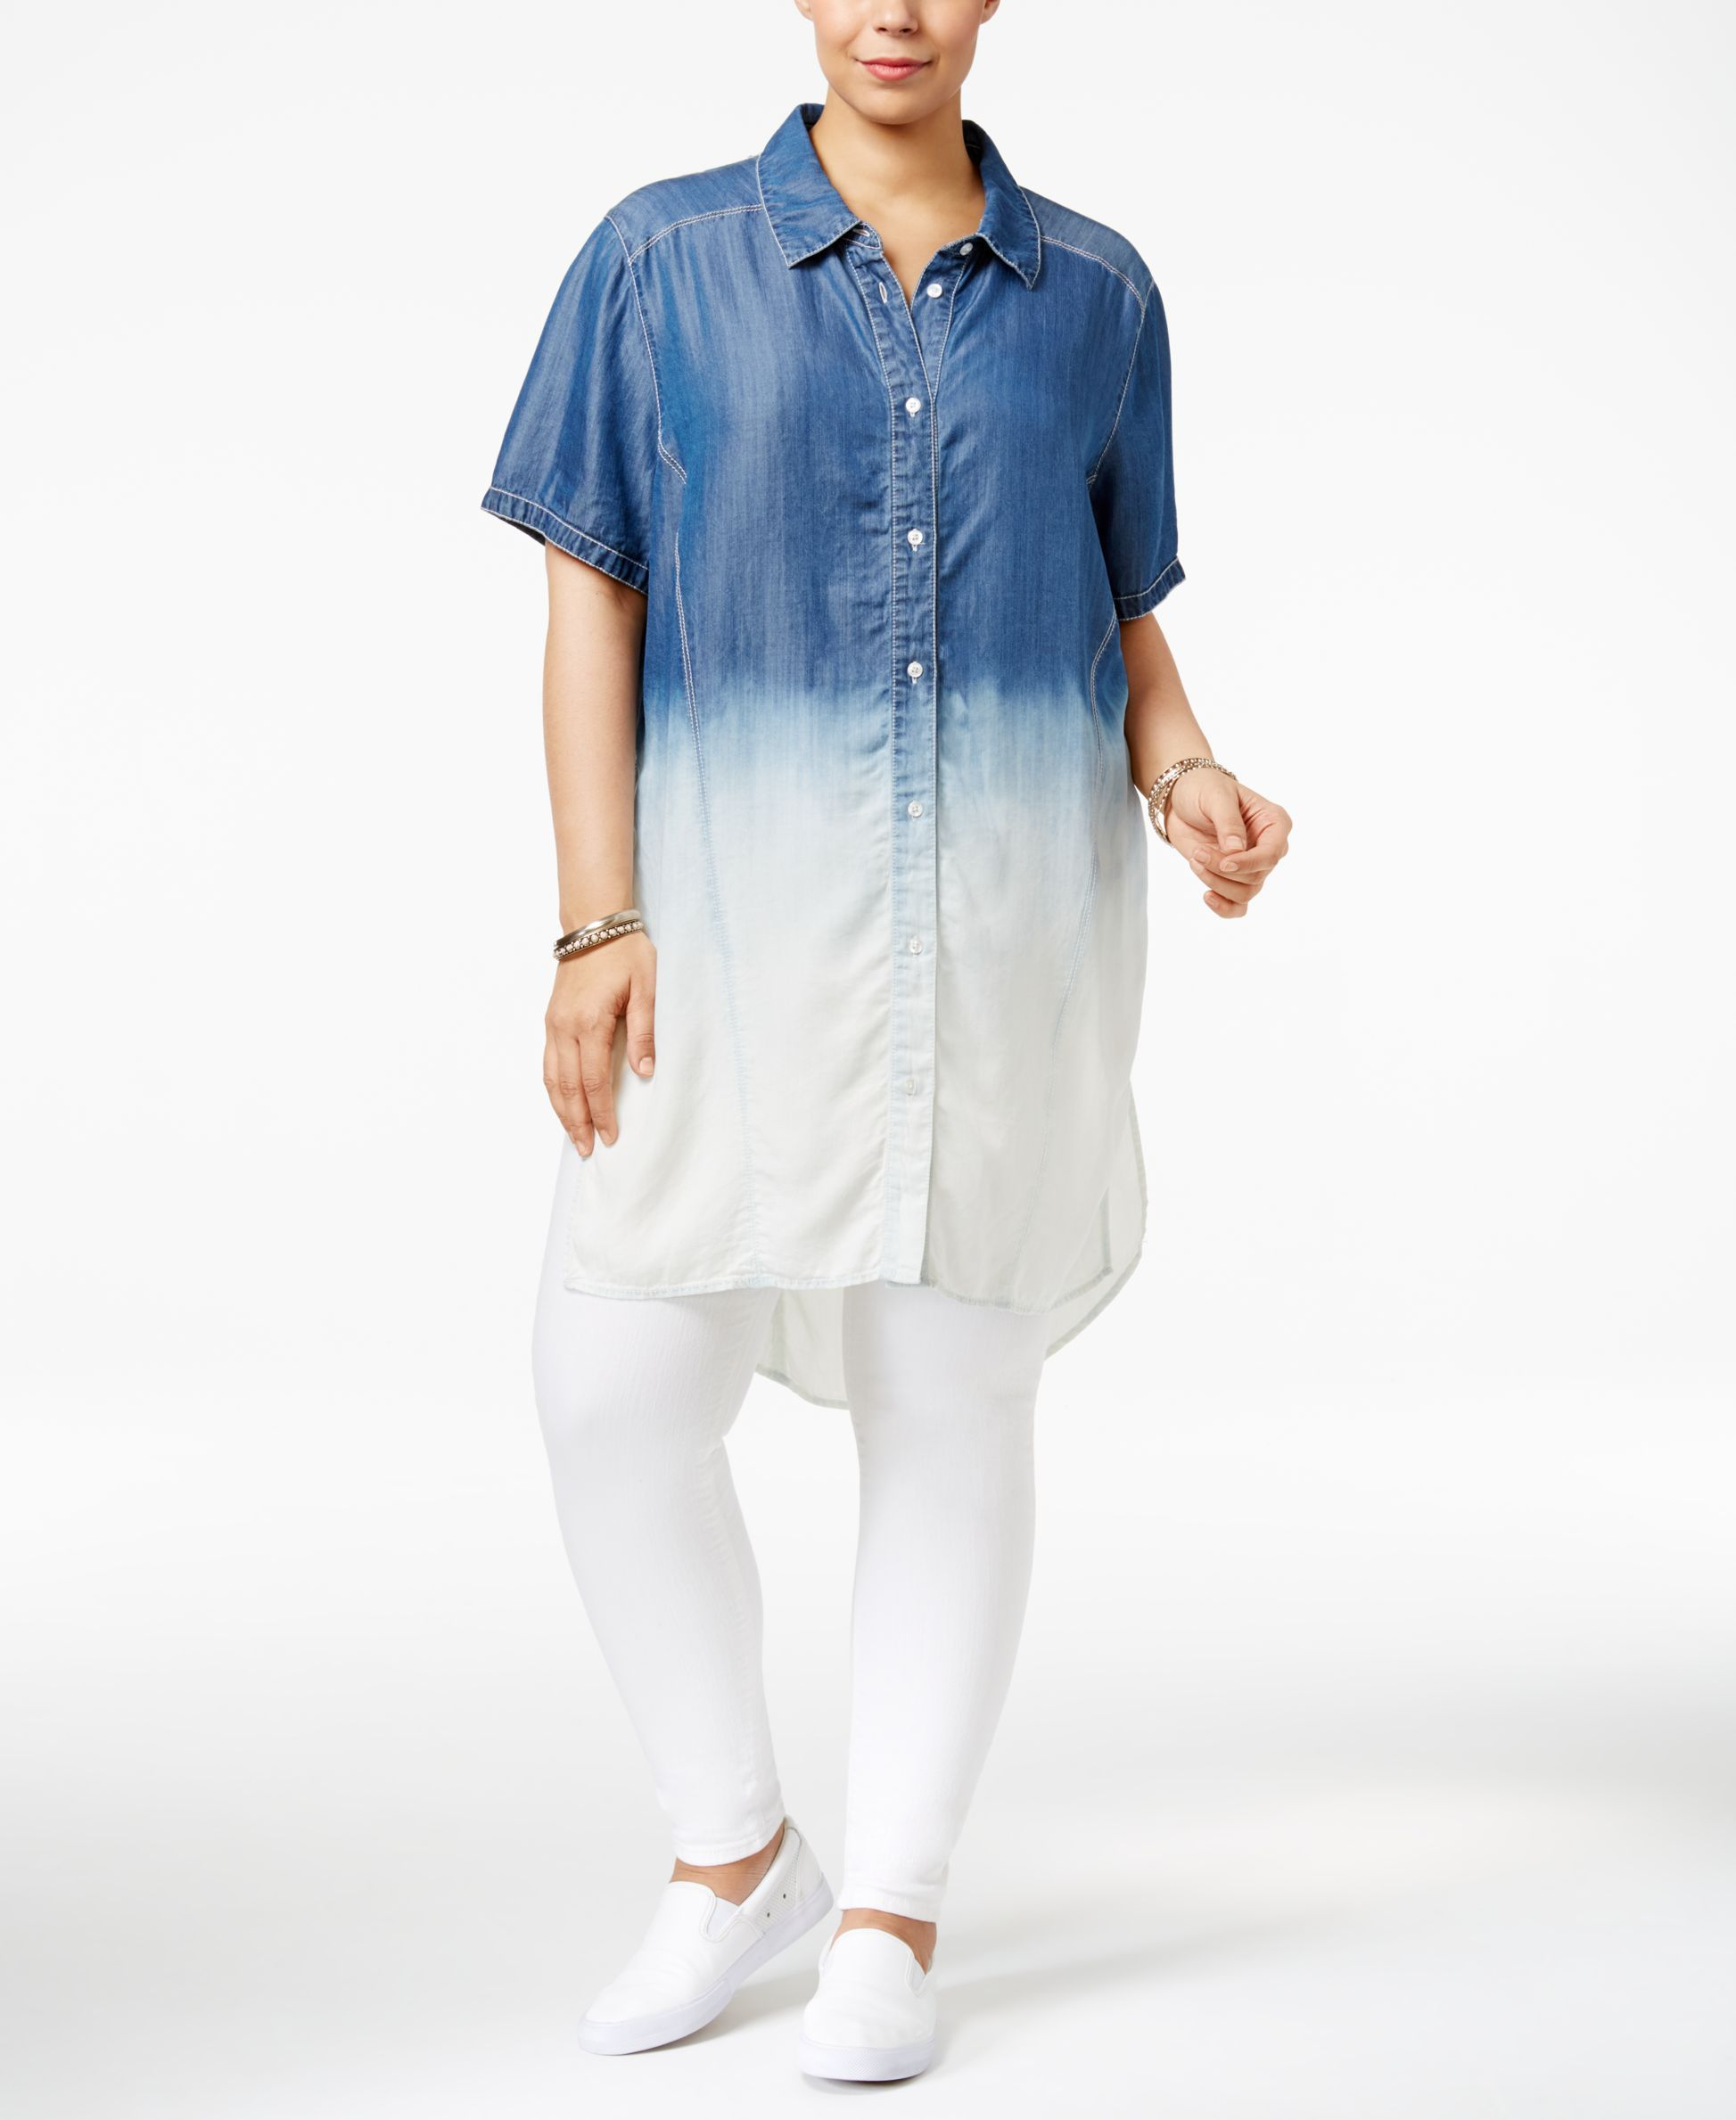 Poetic Justice Trendy Plus Size Chambray Shirtdress Shirtdress And